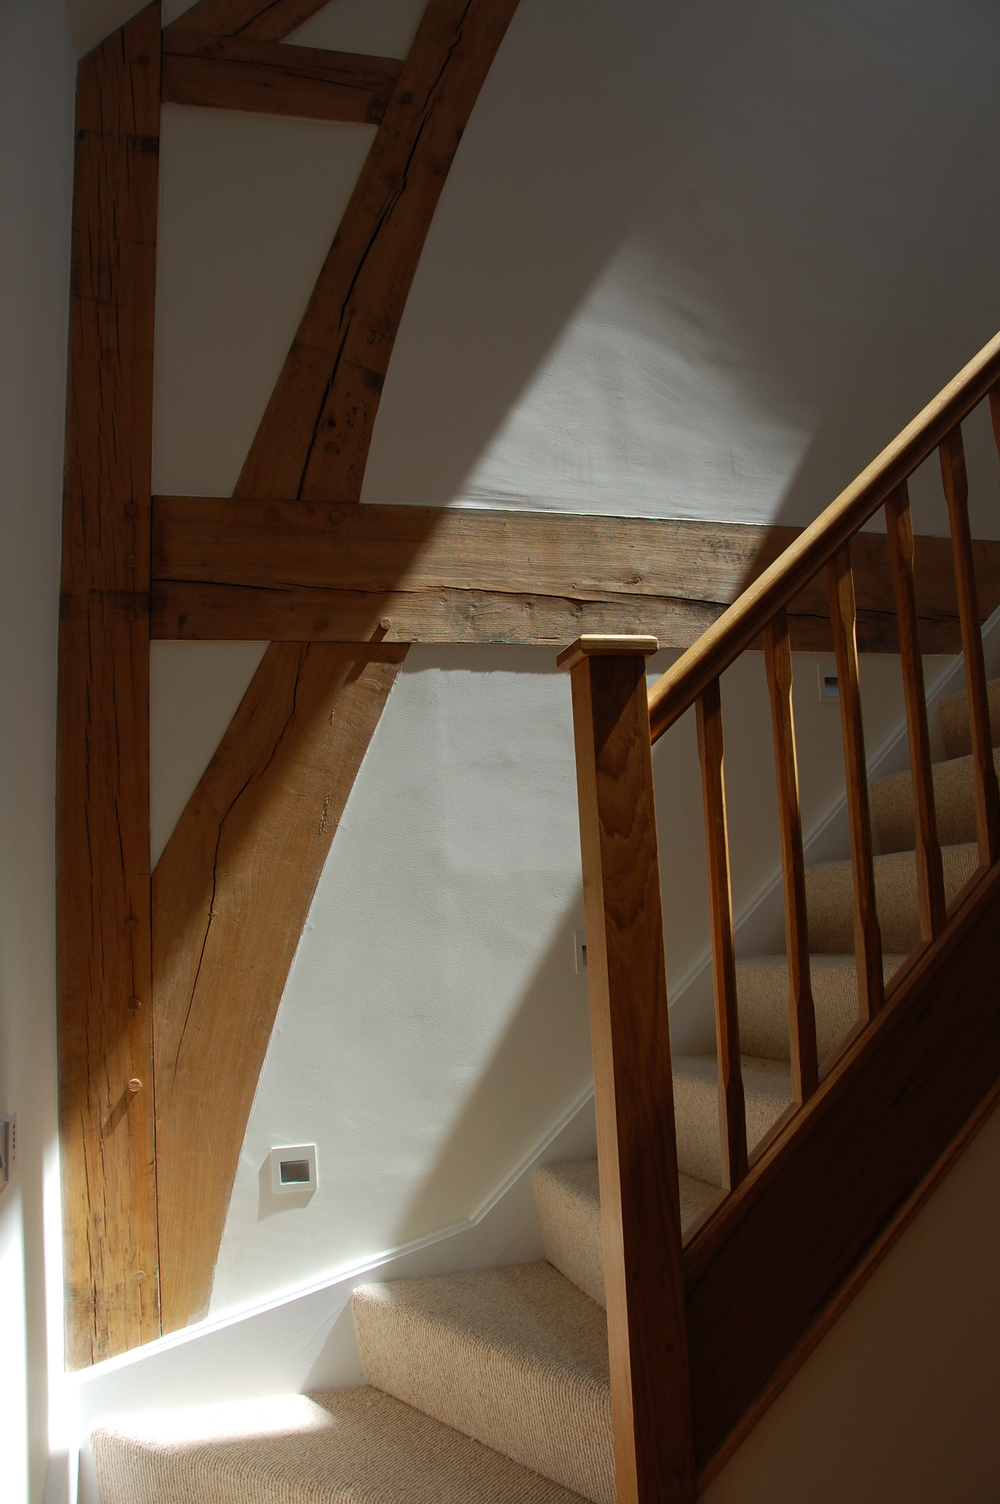 New build oak-framed house, Wiltshire